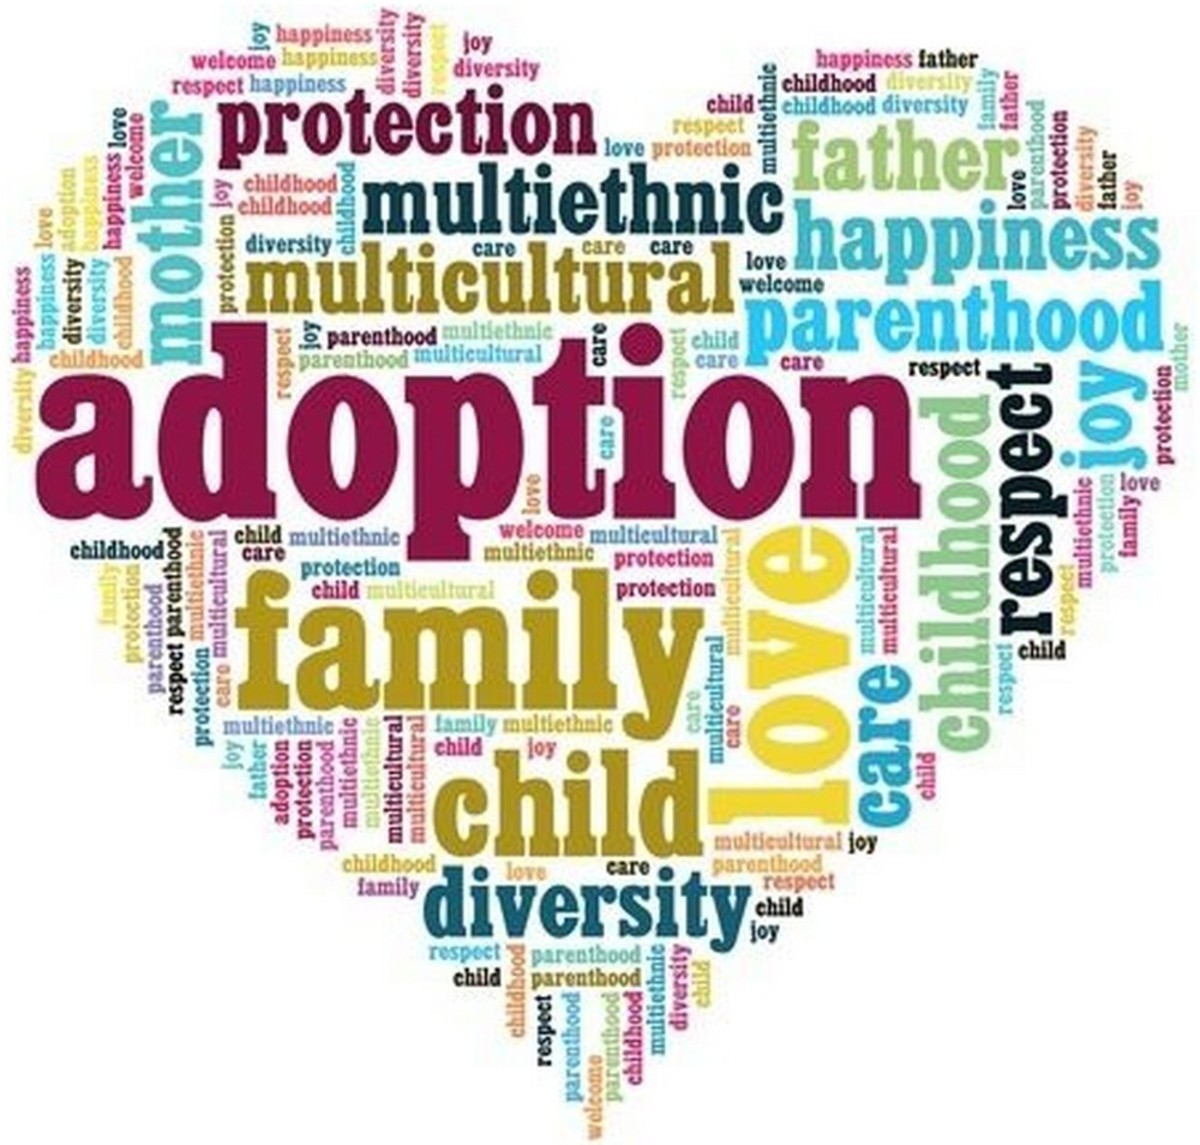 Government makes adoption waaaaay to expensive and difficult. Get government out of adoptions and let the private sector handle it!